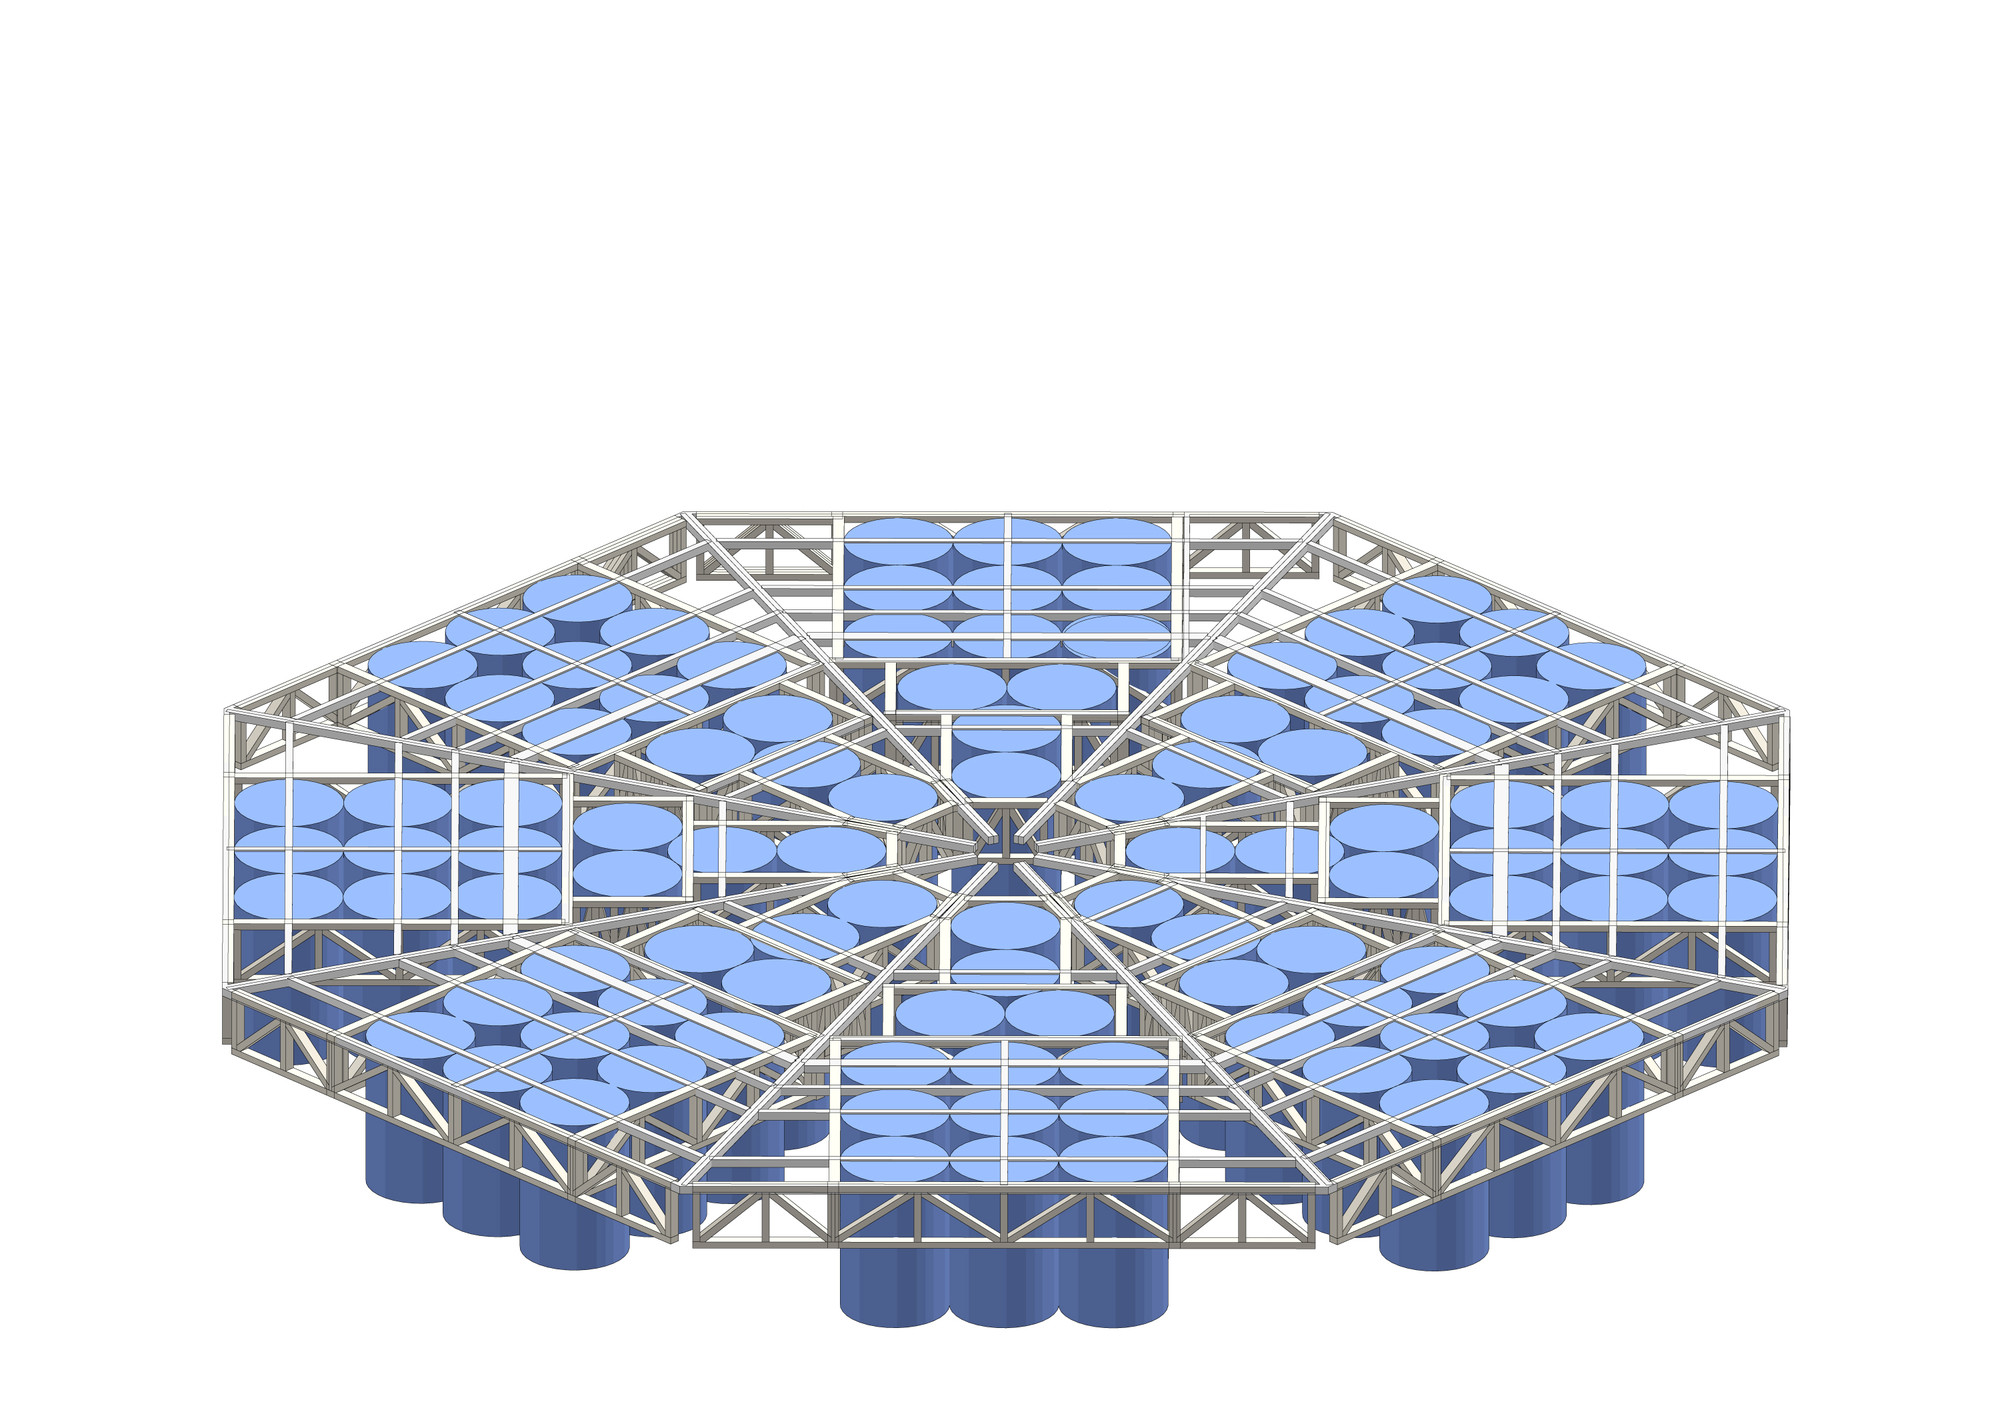 small resolution of  jellyfish barge provides sustainable source of food and water construction diagram step